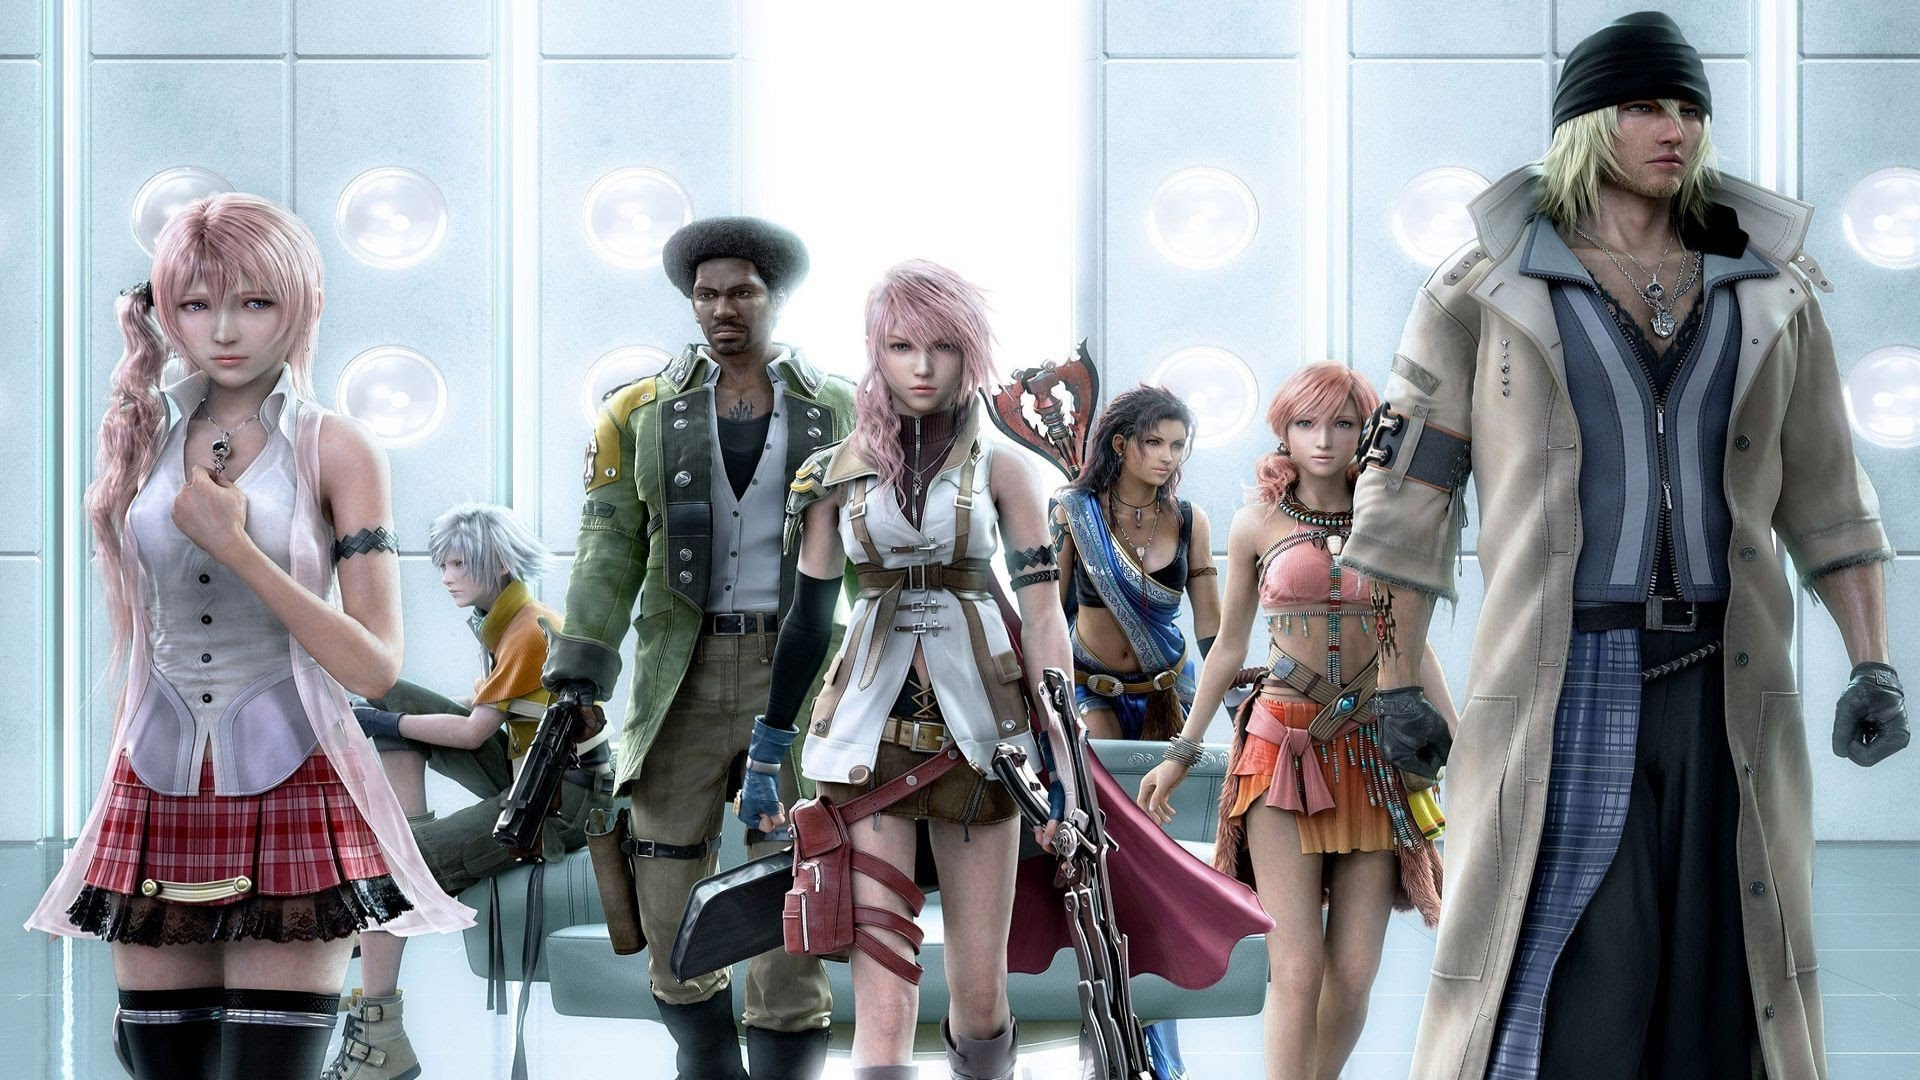 Really Cool 3d Wallpapers Is Final Fantasy Xiii Really That Bad Goomba Stomp